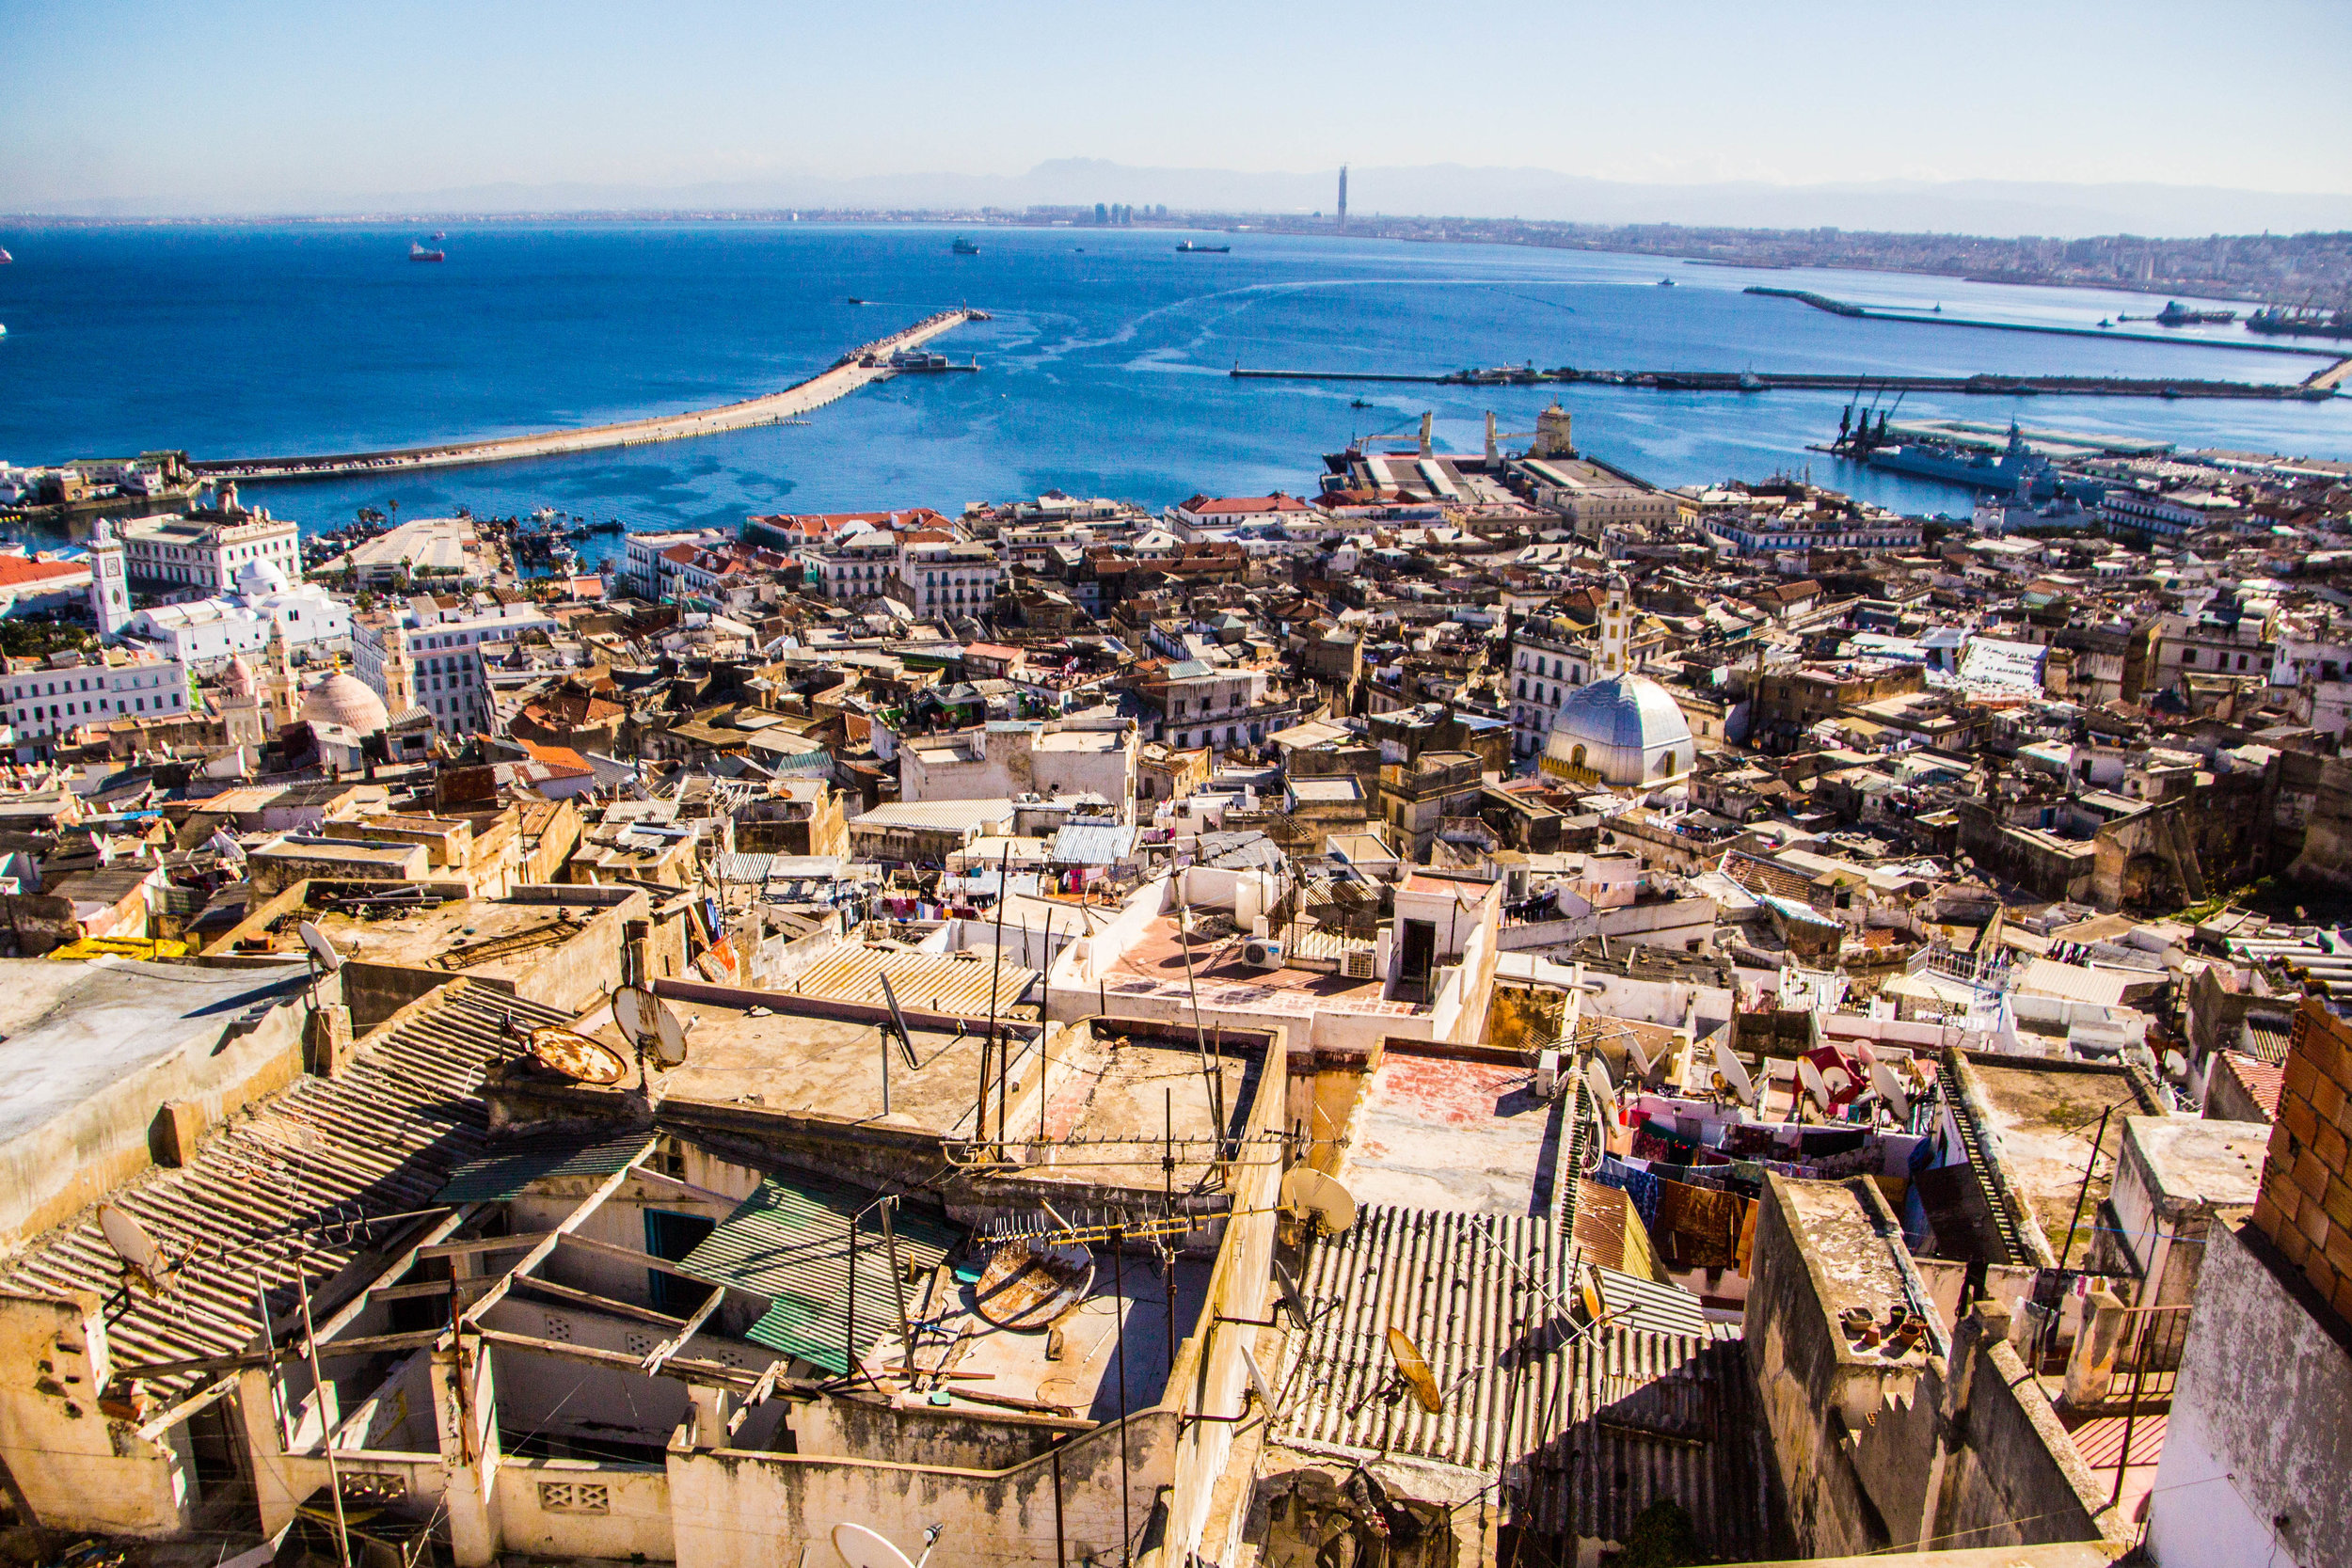 casbah-from-above-algiers-algeria-17.jpg